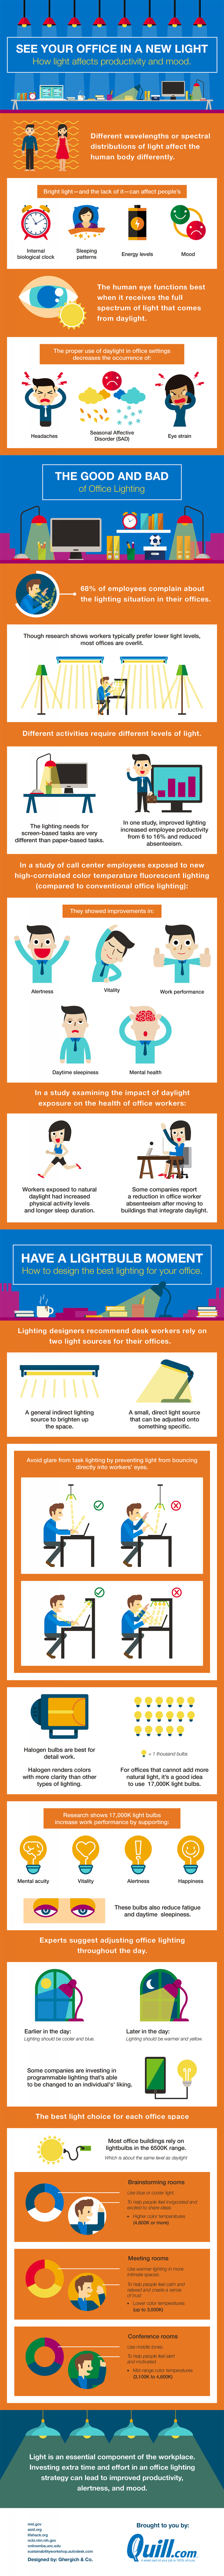 See Your Office in a New Light: How Light Affects Productivity and Mood